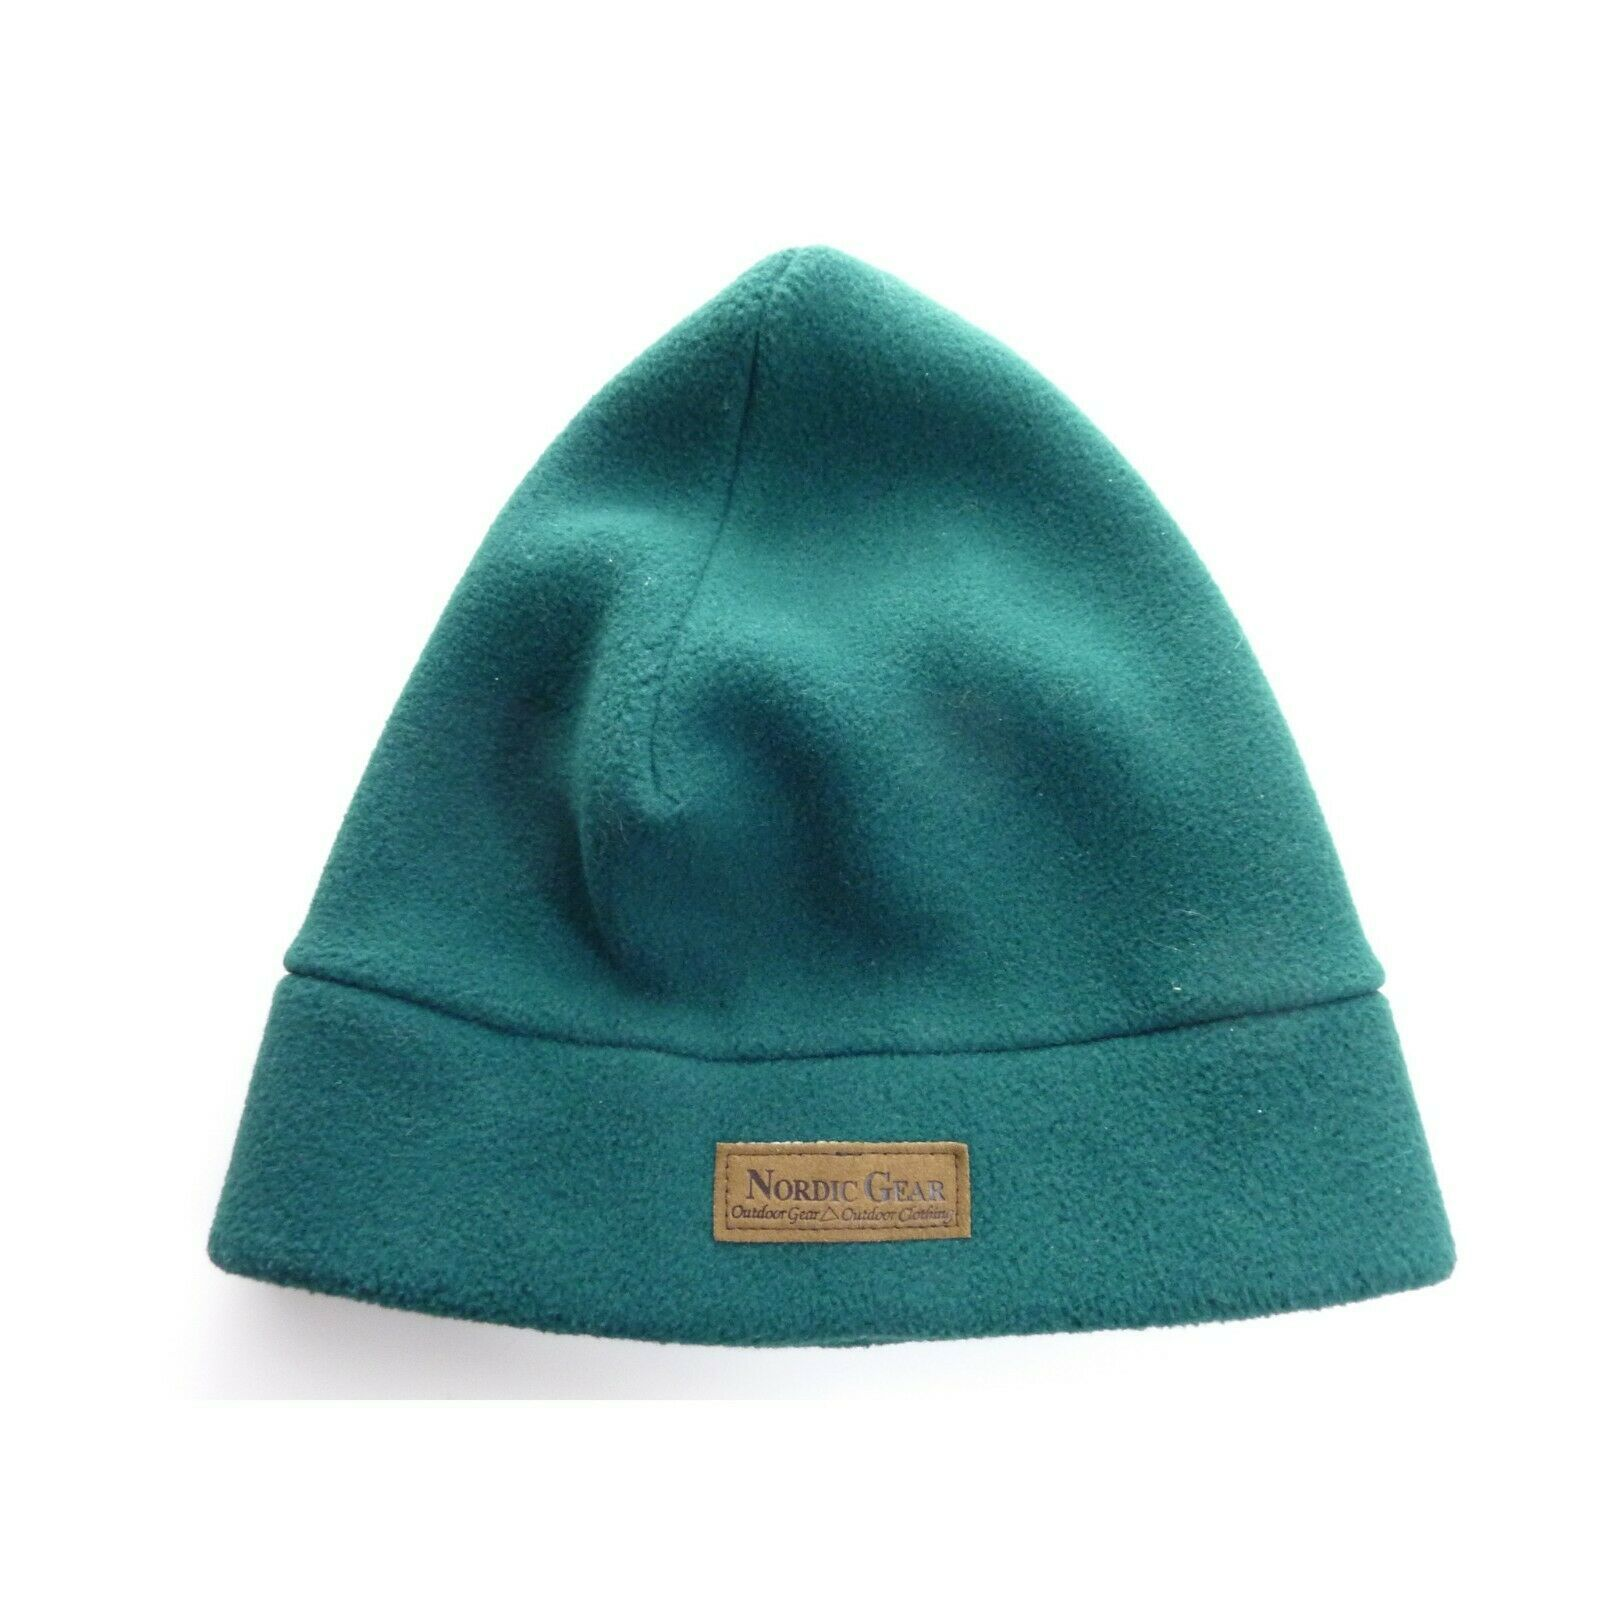 Primary image for  Beanie Hat Nordic Gear Polyester Fleece Beanie Hat Green